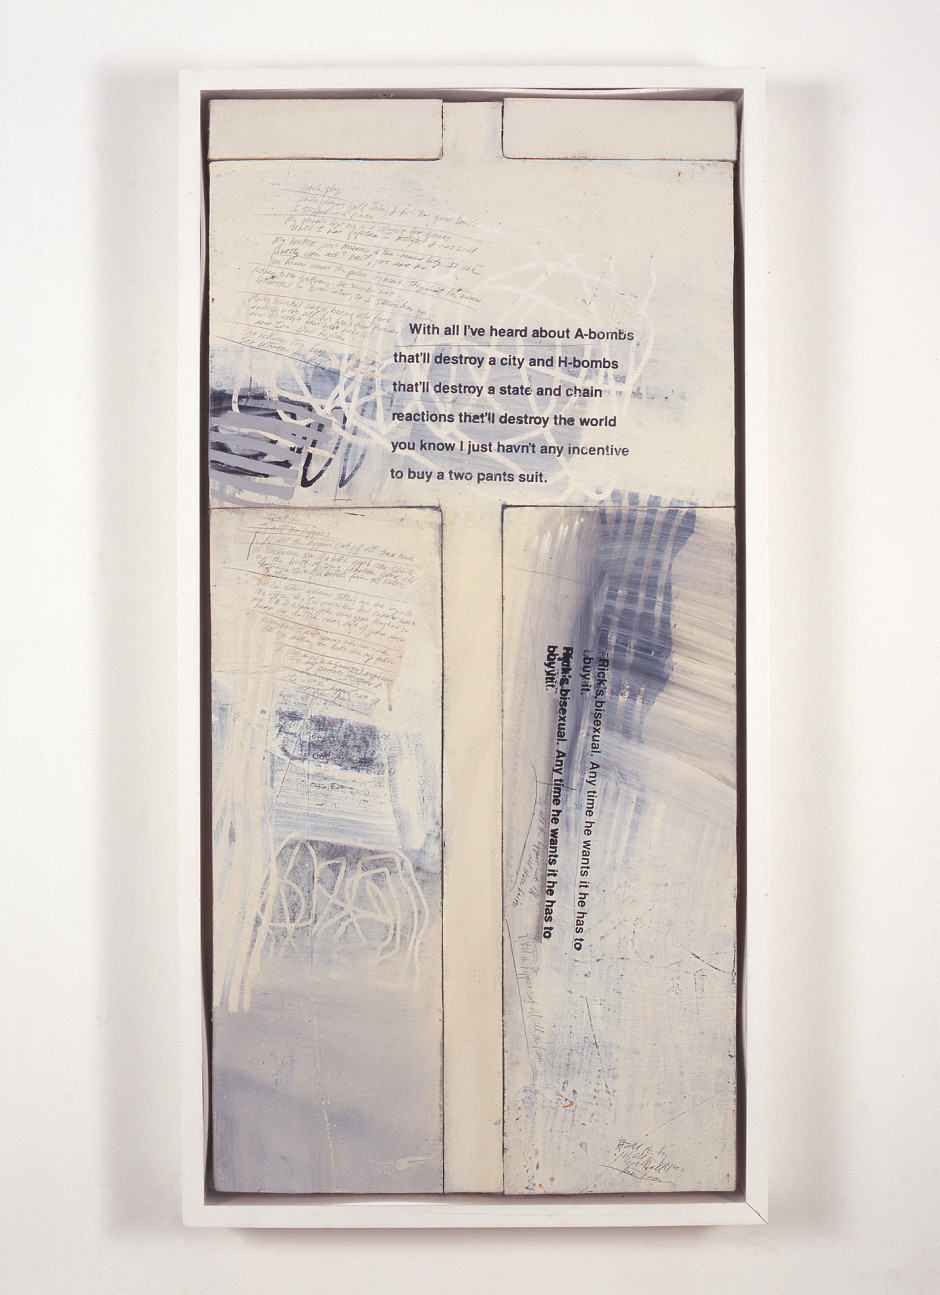 Untitled [Protest Painting], 1992  oil on canvas  102.87 x 52.07 cm 40 1/2 x 20 1/2 in.